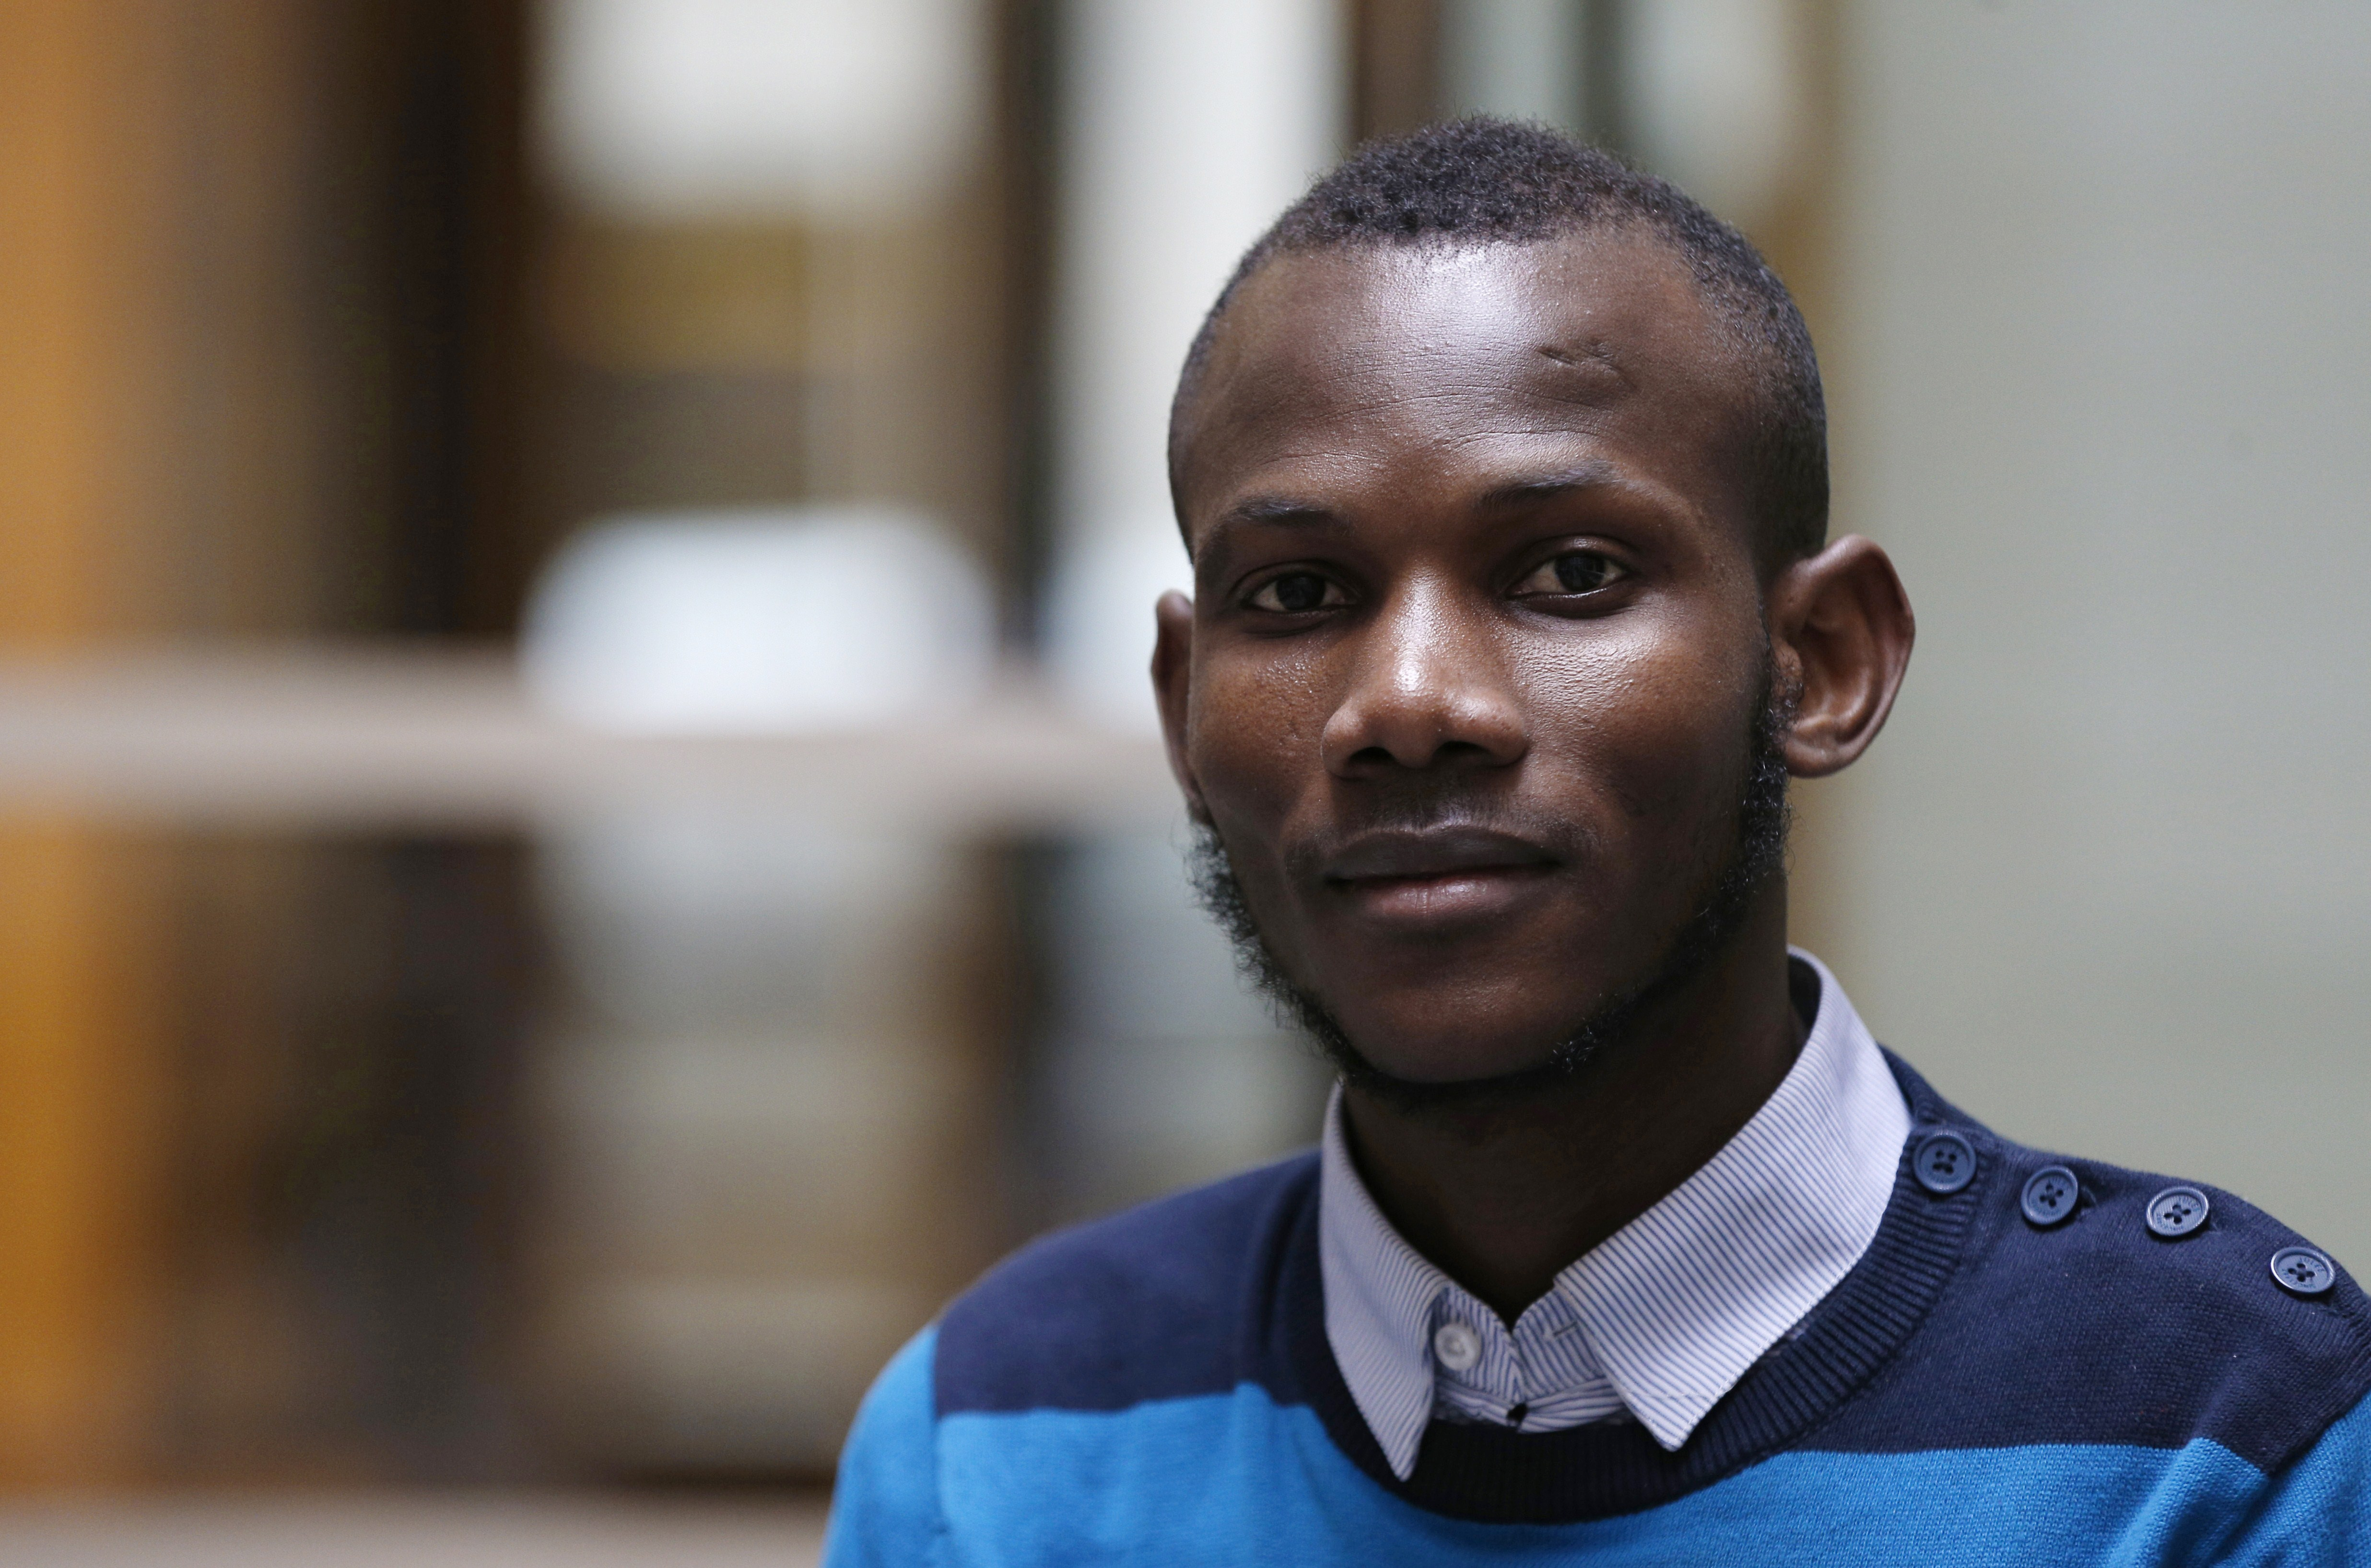 Malian Lassana Bathily, a Muslim employee who helped Jewish shoppers hide in a cold storage room from an islamist gunman during the Jan. 9 attack, poses on Jan. 15, 2015 in Paris.